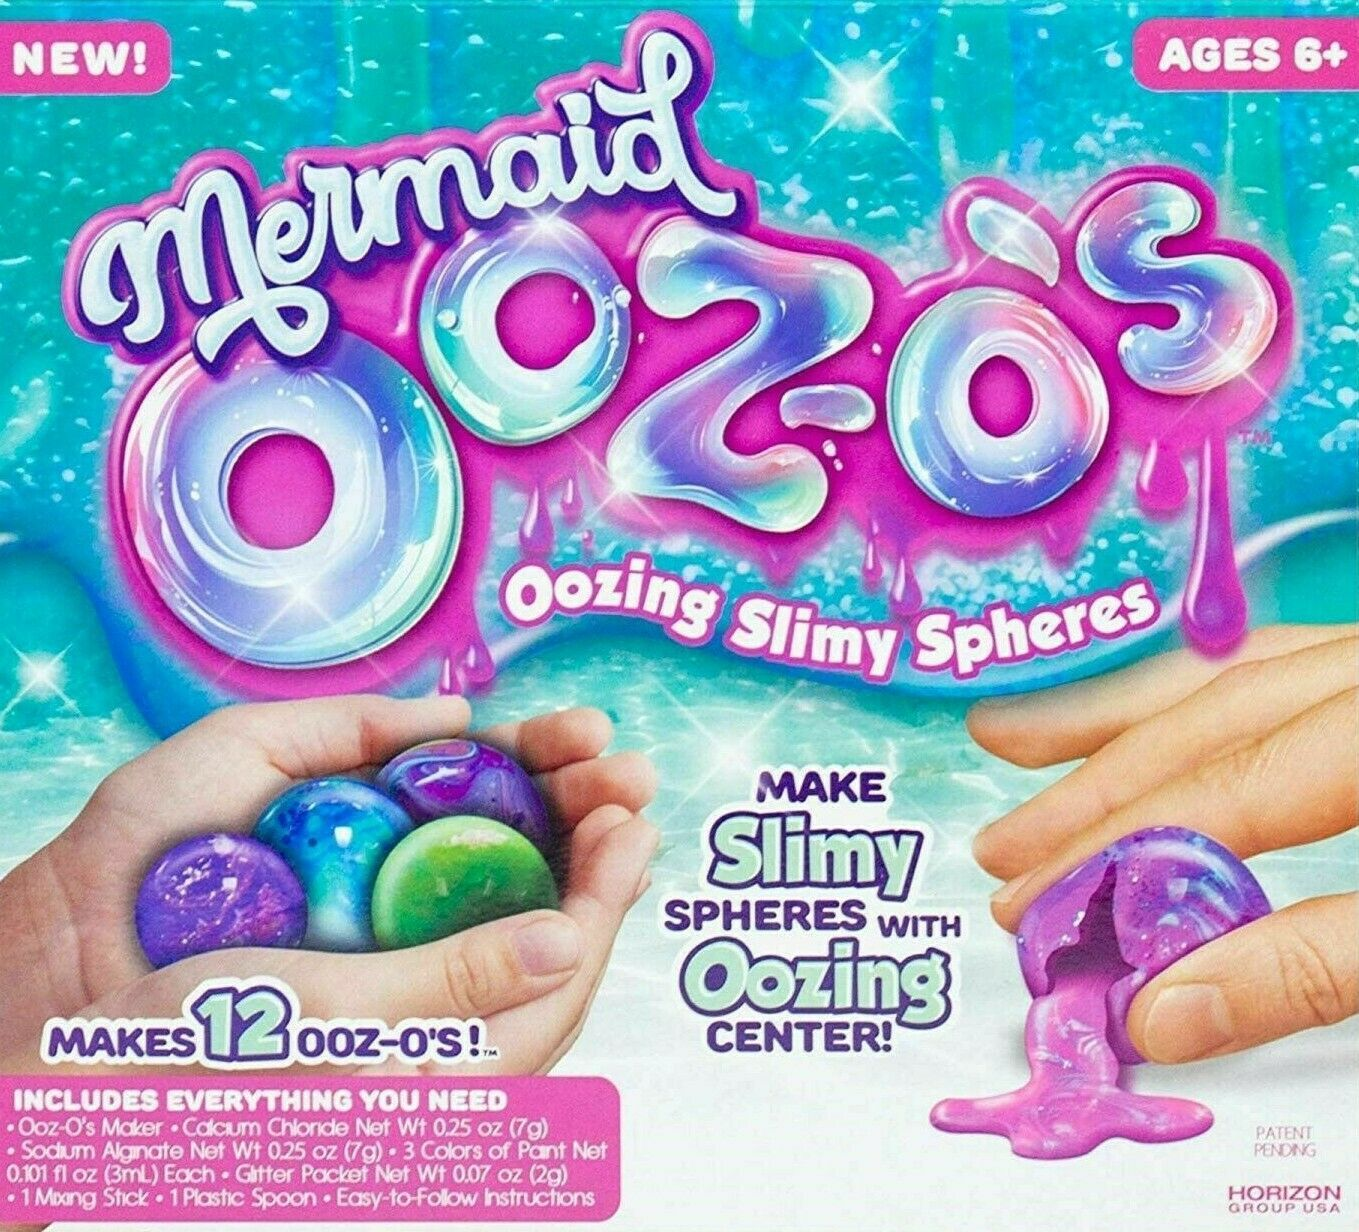 New Mermaid Ooz-o's Oozing Slimy Make Your Own Slimy Spheres With Oozing Centers